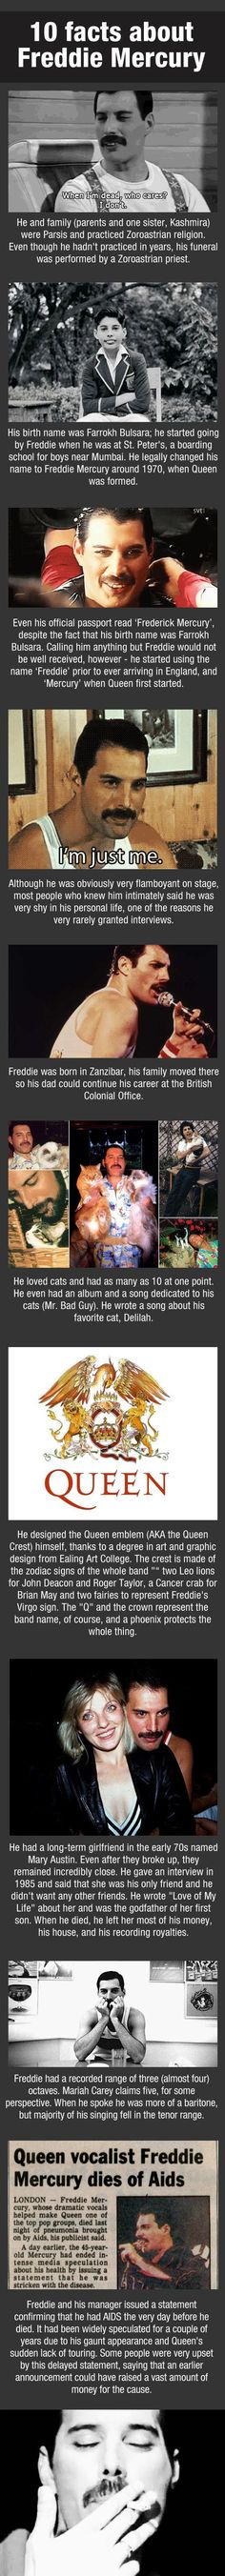 10 facts about Freddie Mercury  // funny pictures - funny photos - funny images - funny pics - funny quotes - #lol #humor #funnypictures